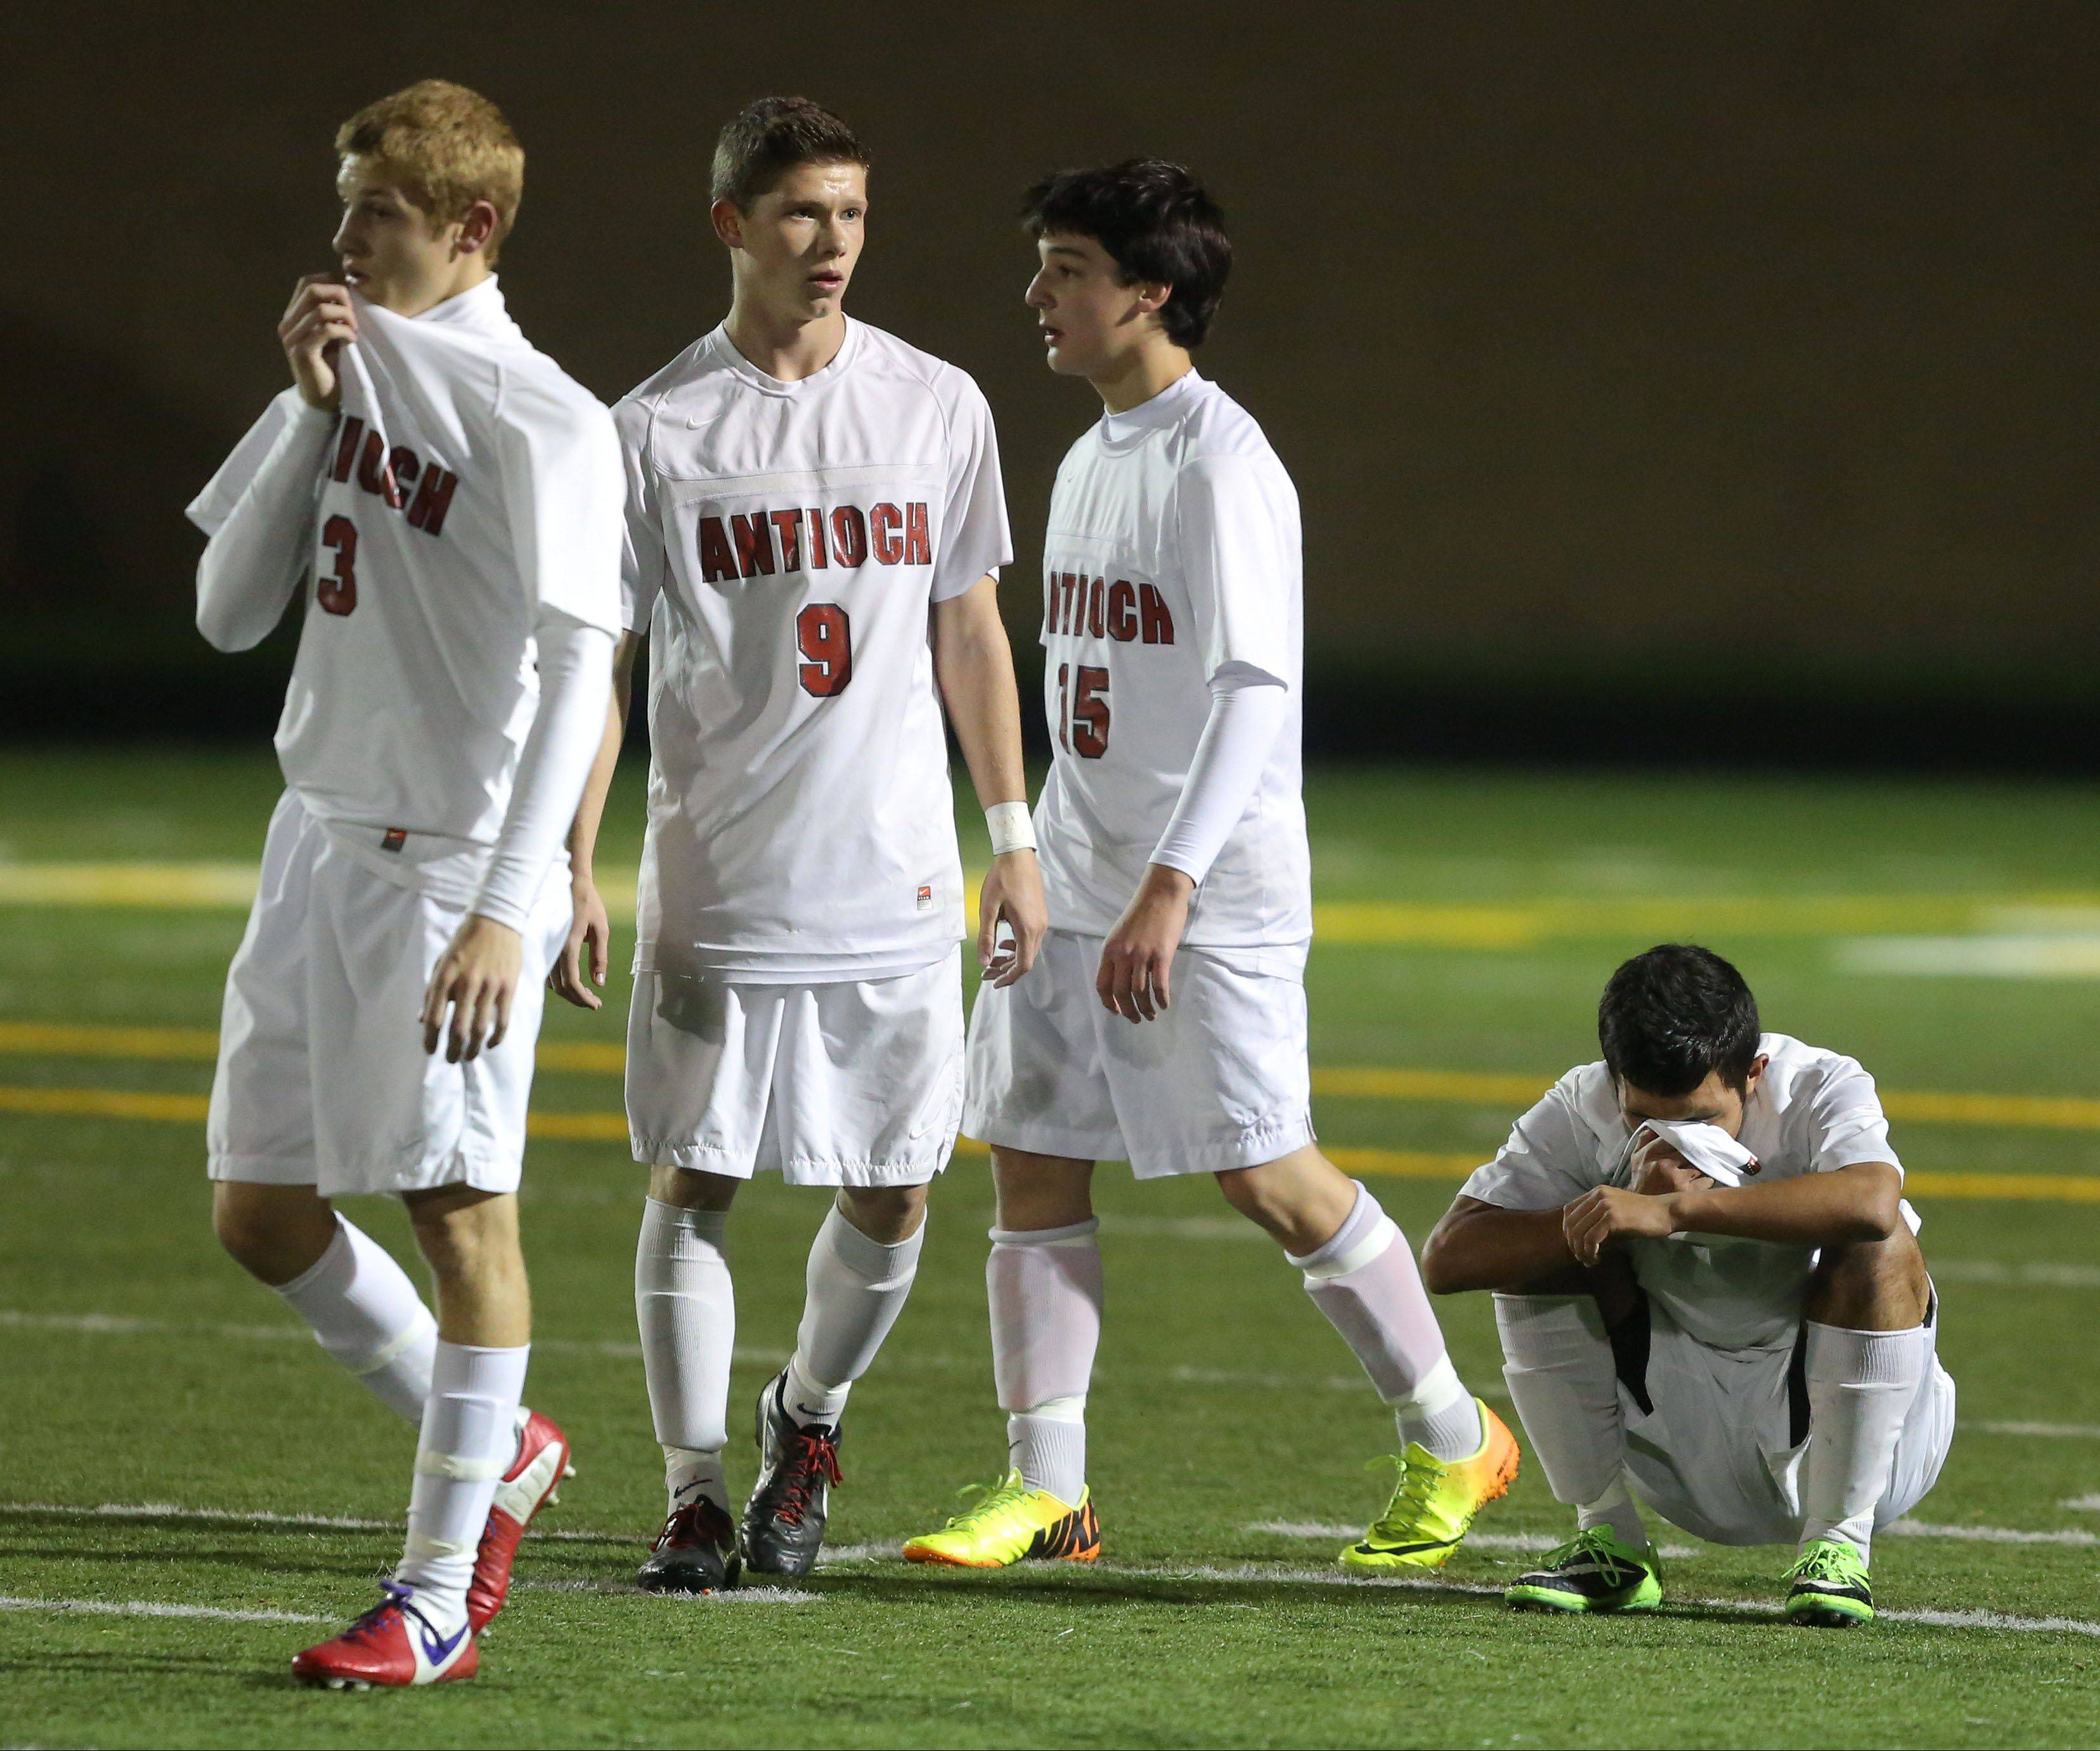 From left, Antioch�s Danny Brito, Krystian Streit, Danny Lonski and Iven Hernandez come to grips with a 1-0 loss to St. Ignatius in Class 2A supersectional play Tuesday night at Stevenson.